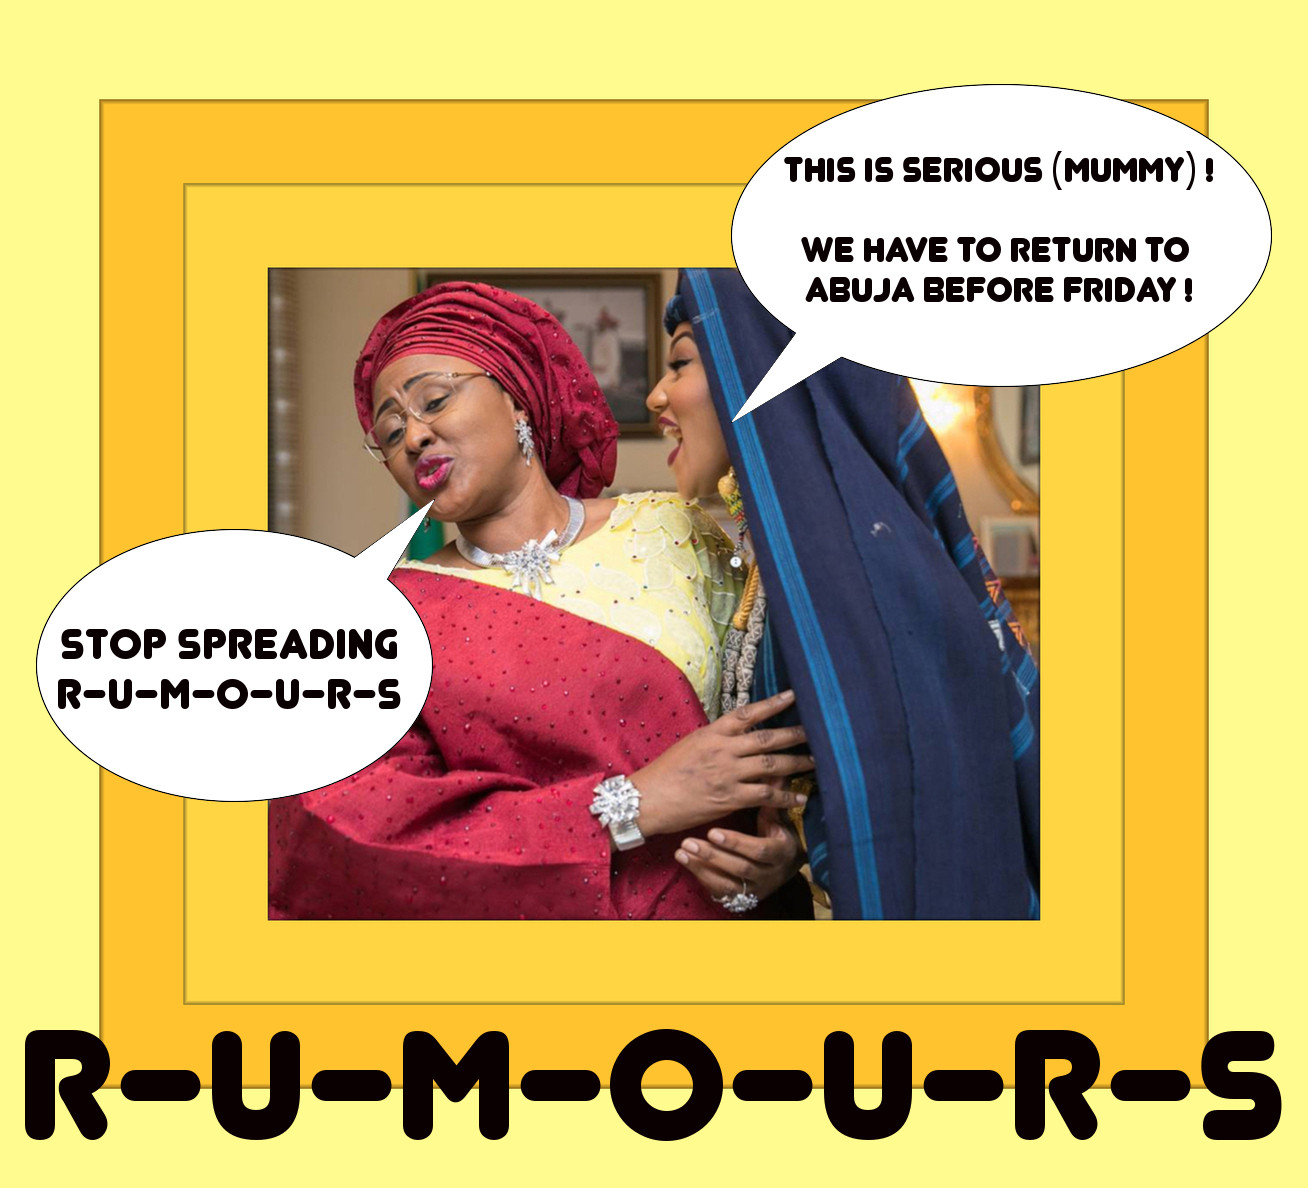 Aisha Buhari The Other Room Soap Opera Top Best Online One Number 1 #1 Nigeria Top Wedding Blog Blogs Blogger Bloggers Website Websites Celebrity News #1 Rumour Rumours Gossip Gist Gists Amebo Celebrities Film Music Event Events Actor Actors Musician Musicians Fashion Business Jobs Sports Health Care Healthcare Advice Travel